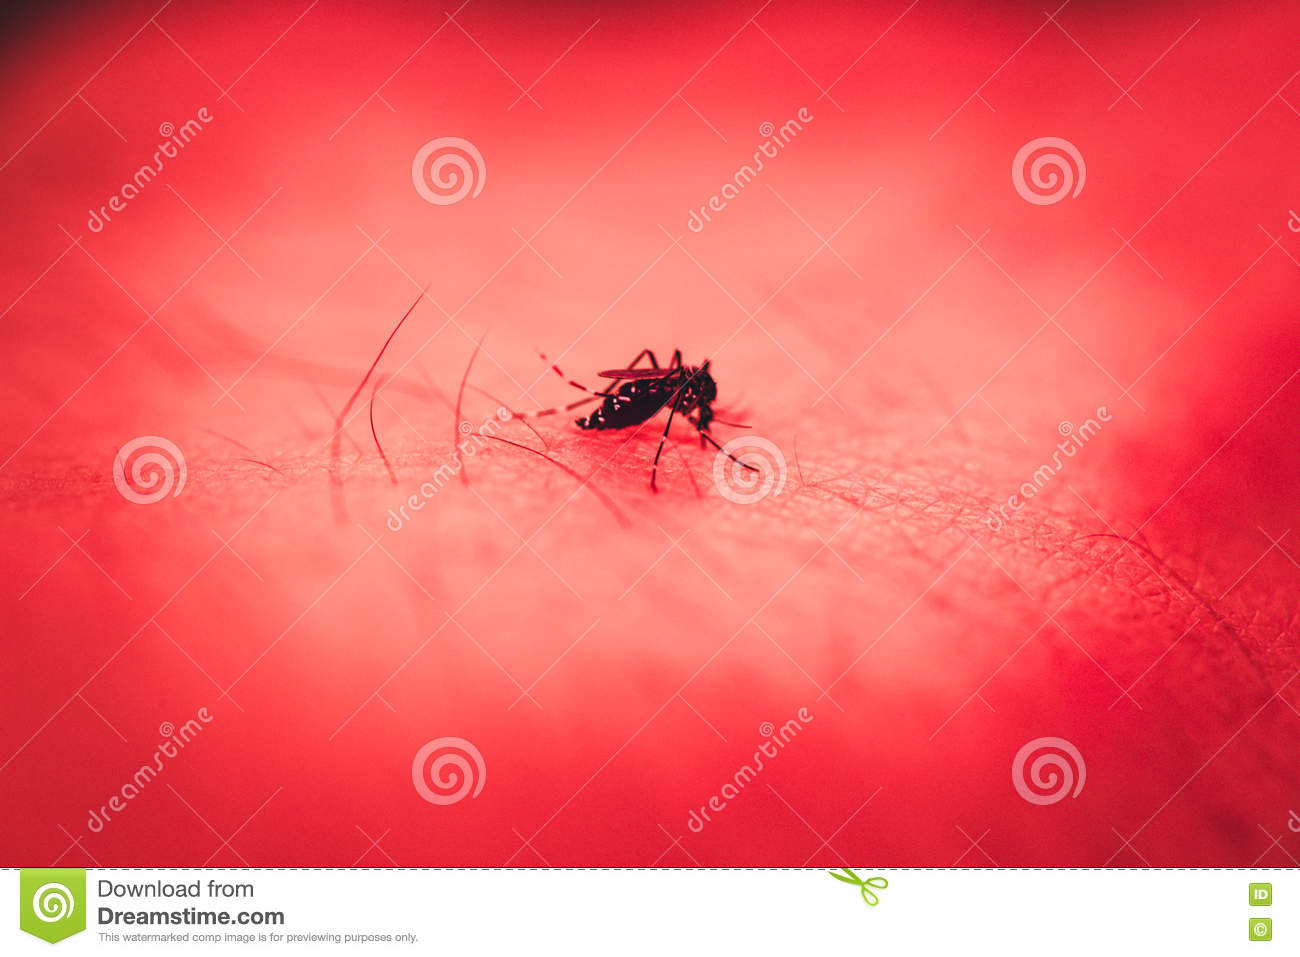 Mosquito Bite At Human Skin With Red Color Tone  Stock Image - Image